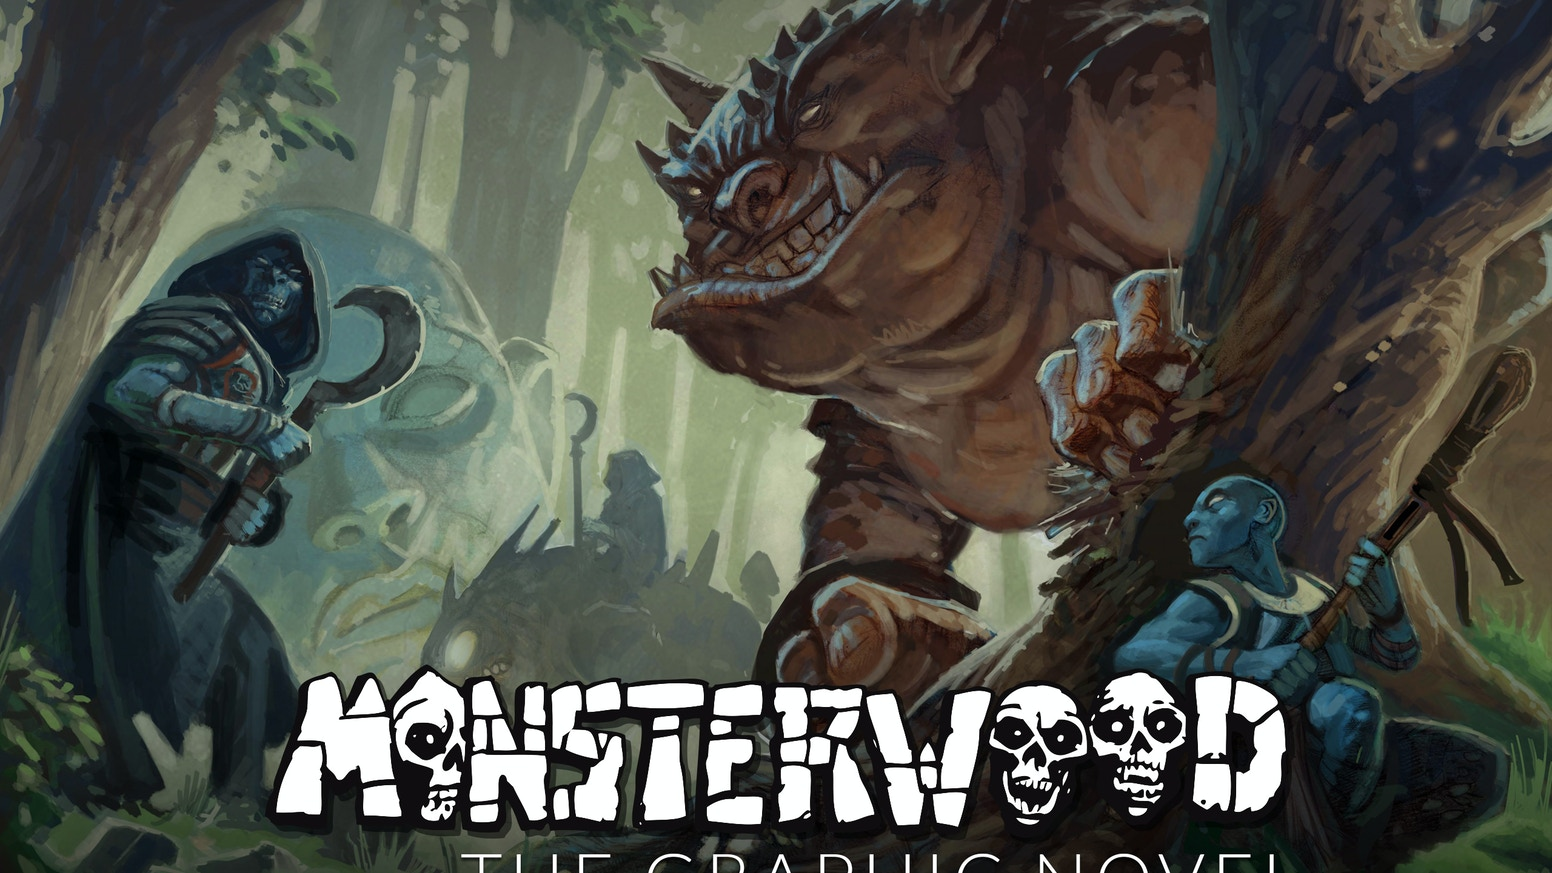 Monsterwood: Book 1 Graphic Novel is a coming of age, fantasy story, set in an ancient, haunting, and beautiful world of Magog.